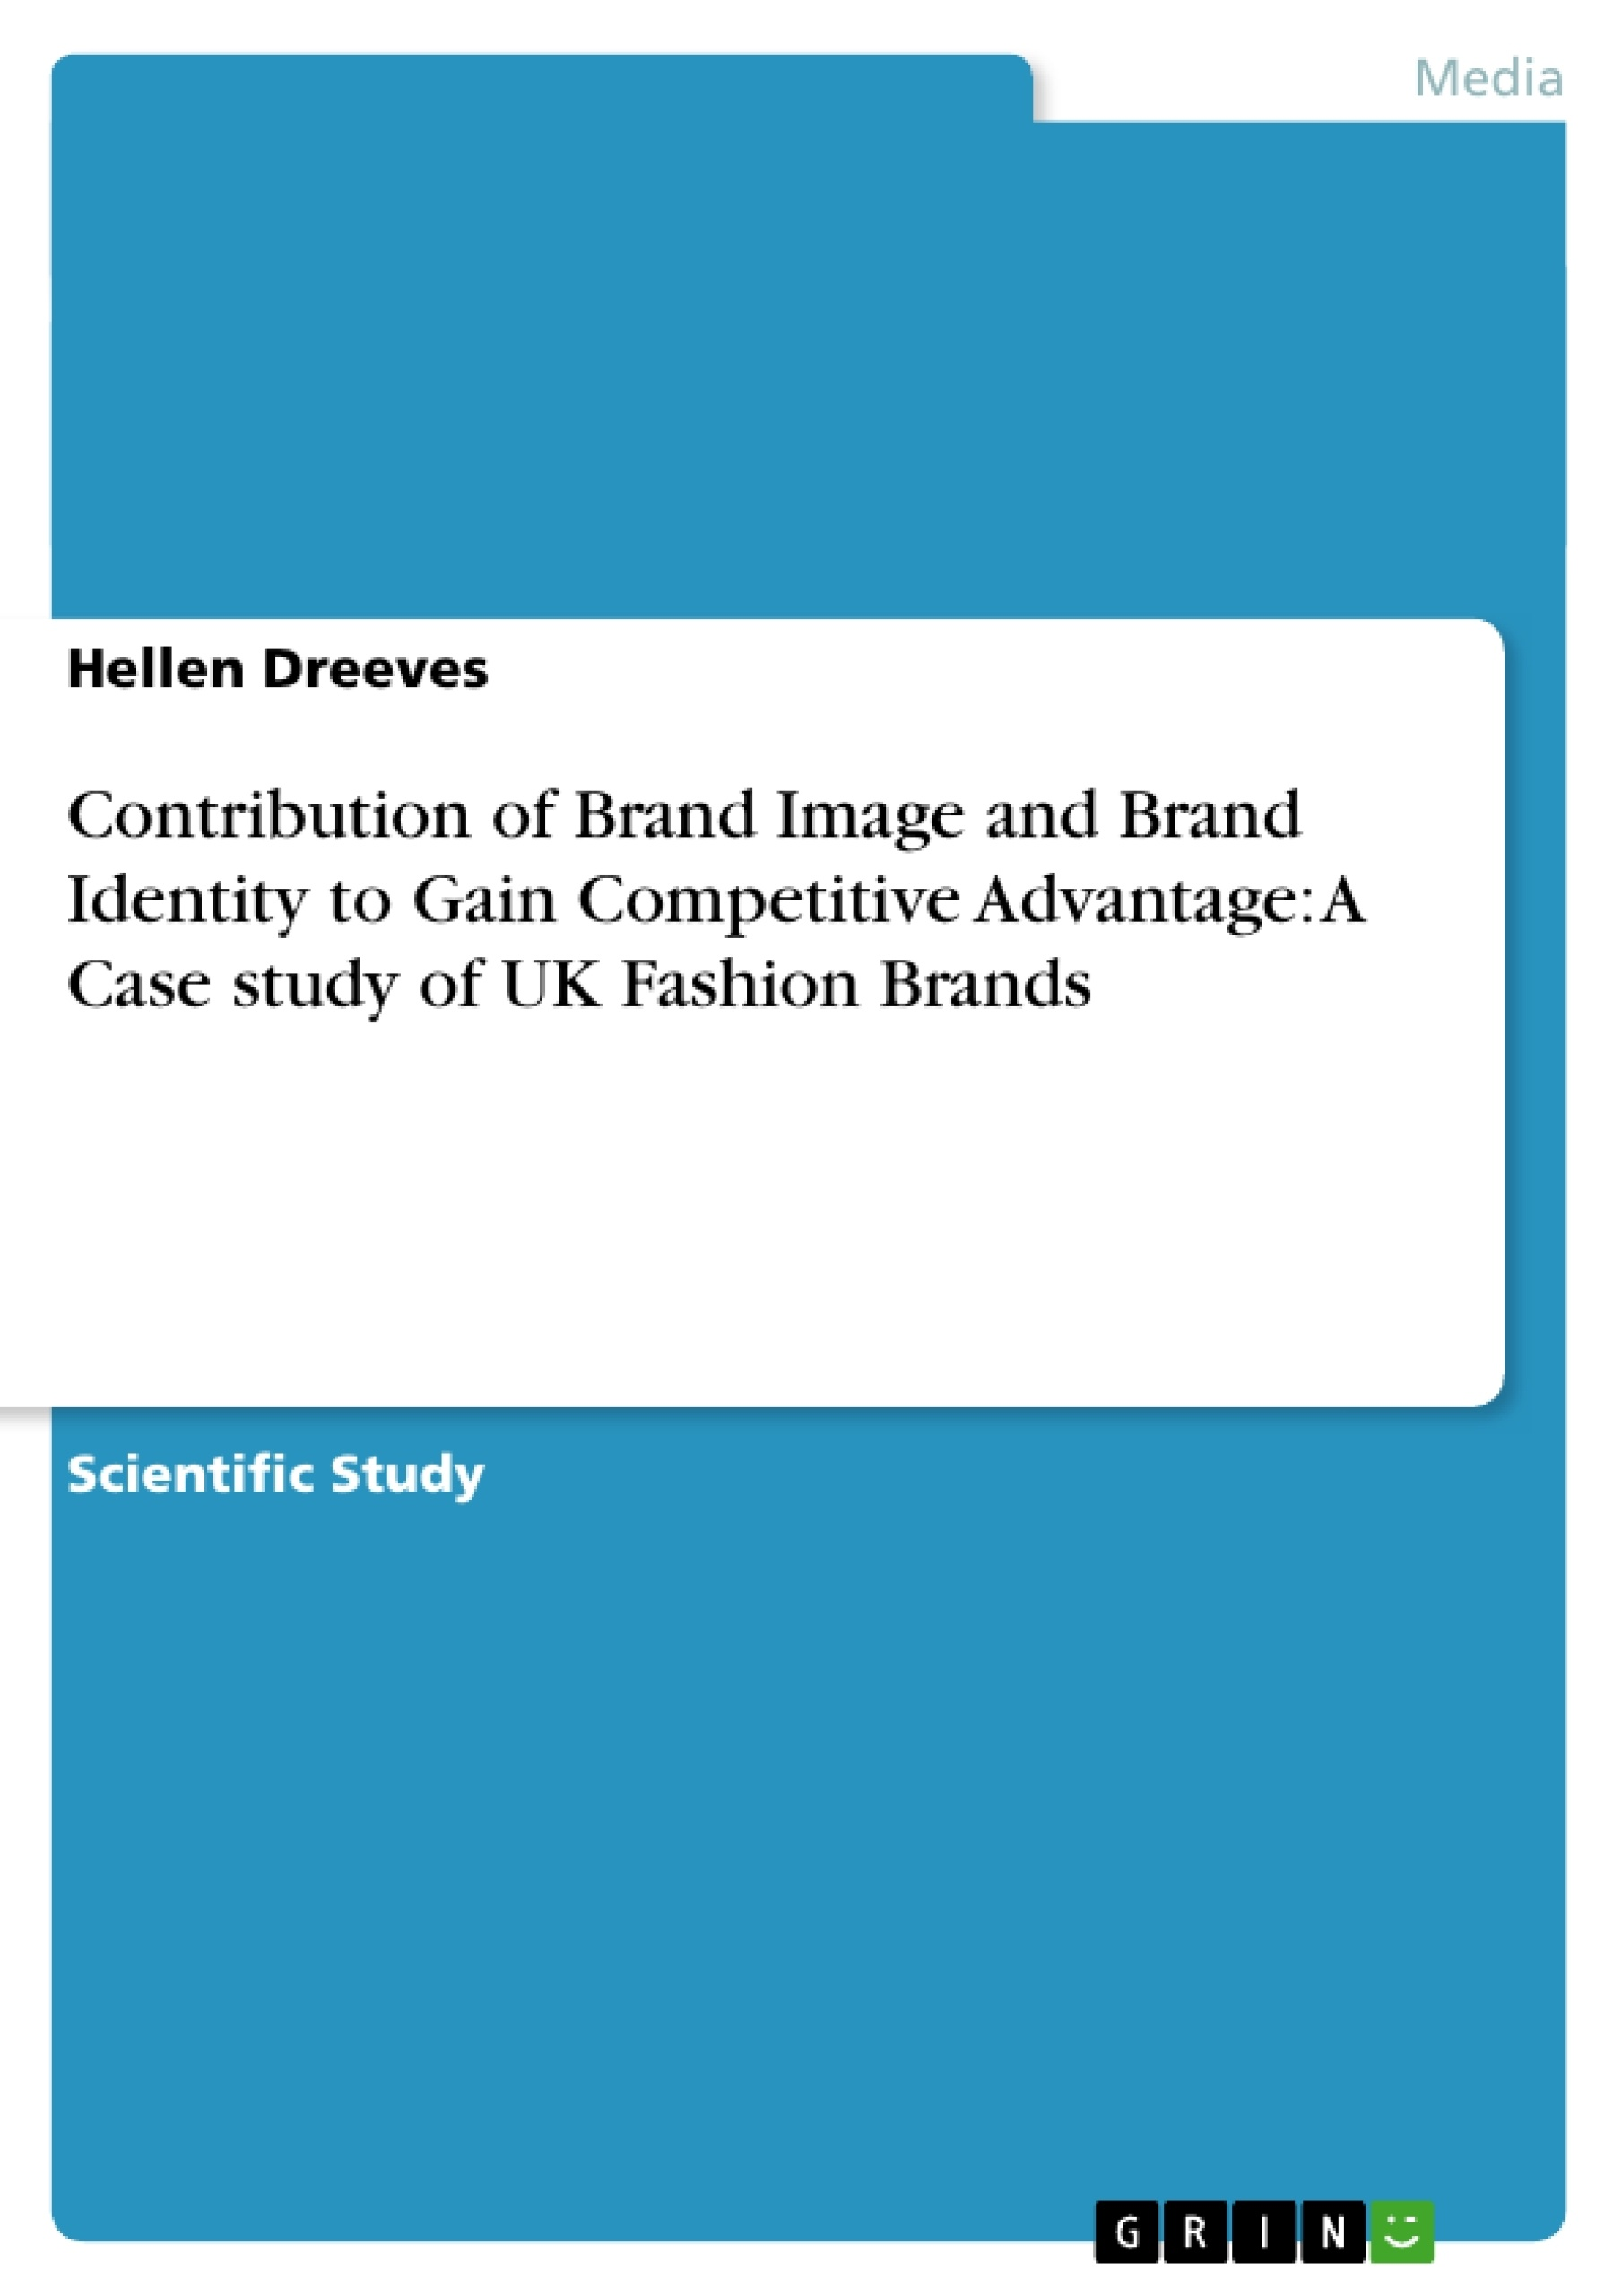 Title: Contribution of Brand Image and Brand Identity to Gain Competitive Advantage: A Case study of UK Fashion Brands